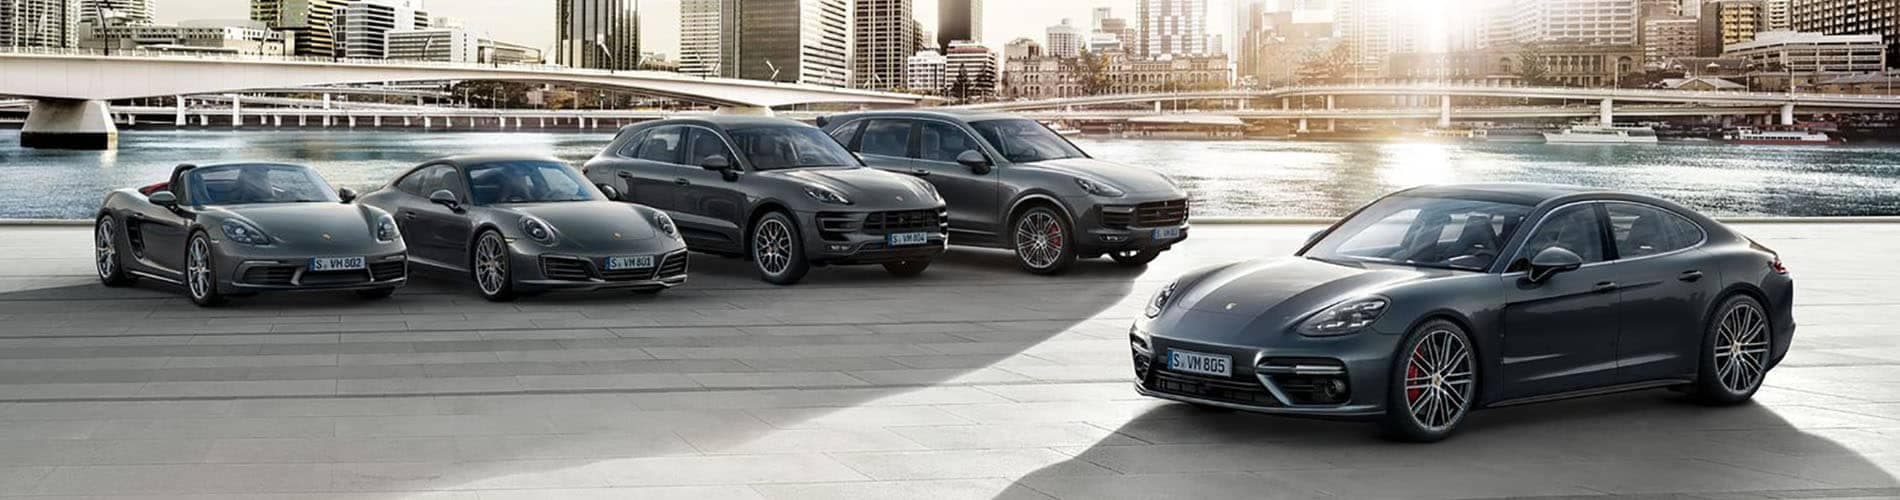 Porsche Certified Pre Owned >> Porsche Certified Pre Owned Vs Bmw Pre Owned Used Cars